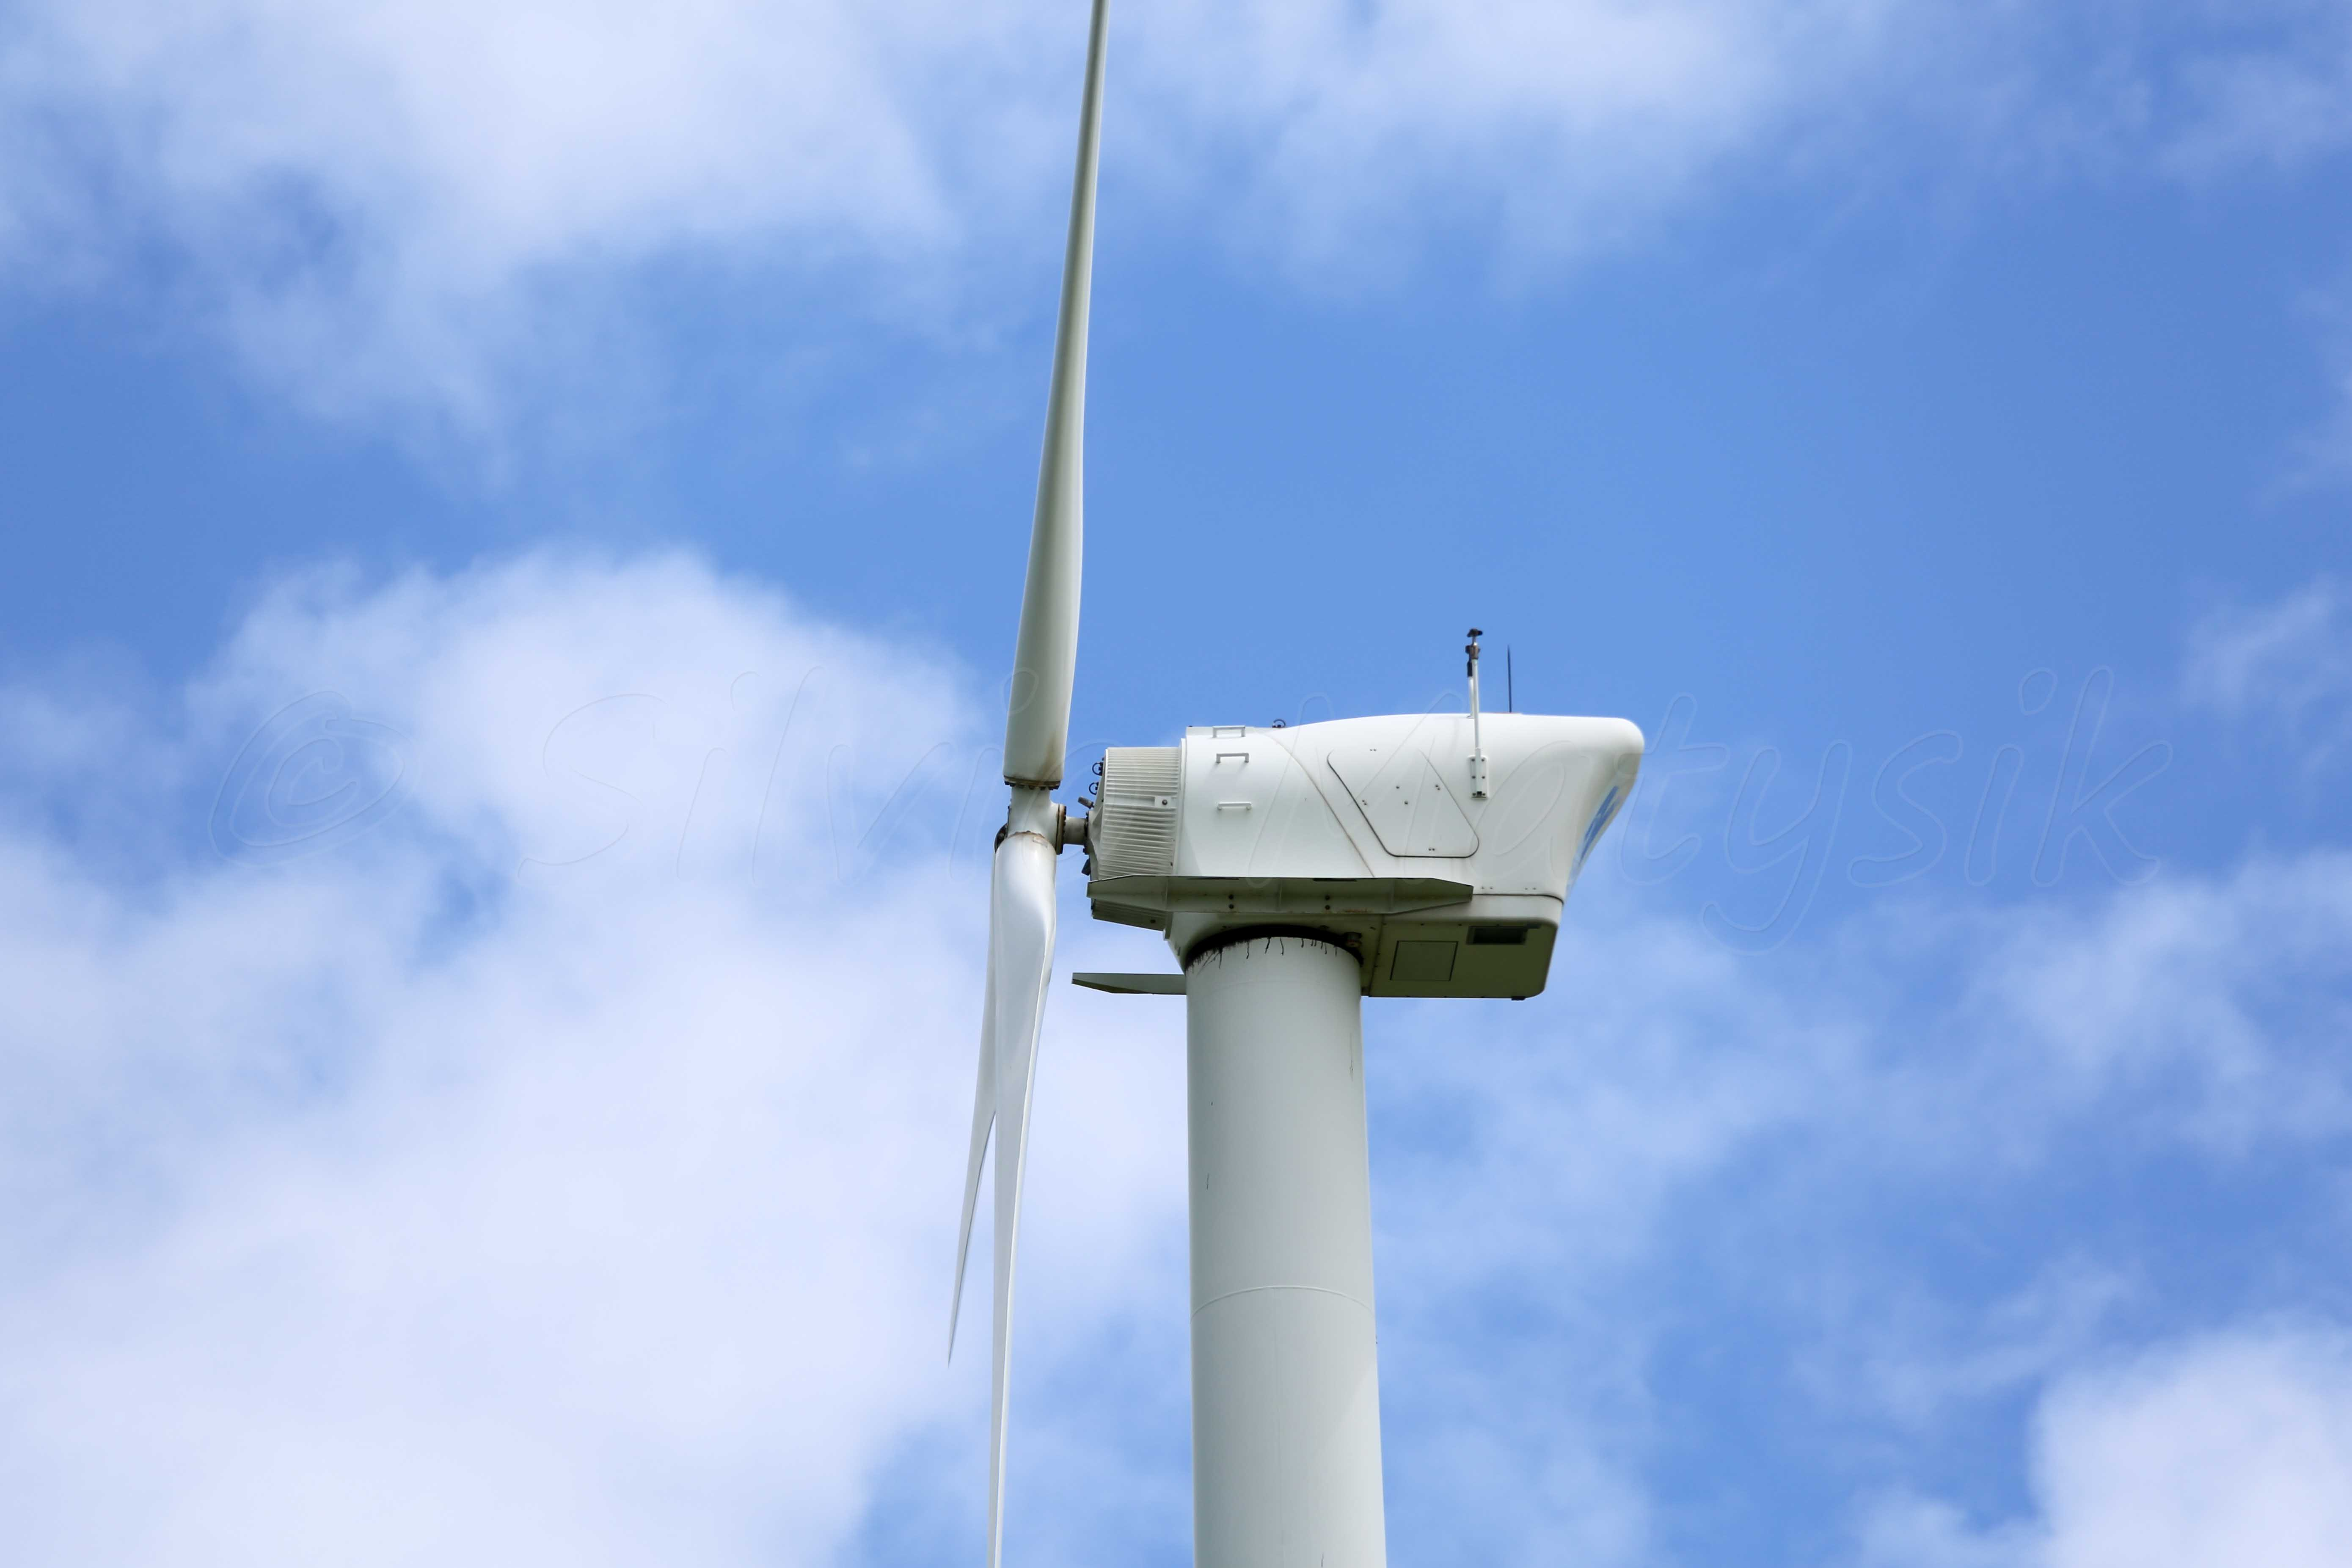 NPS Northern Power NPS 100C 21 100 00 kW Wind turbine